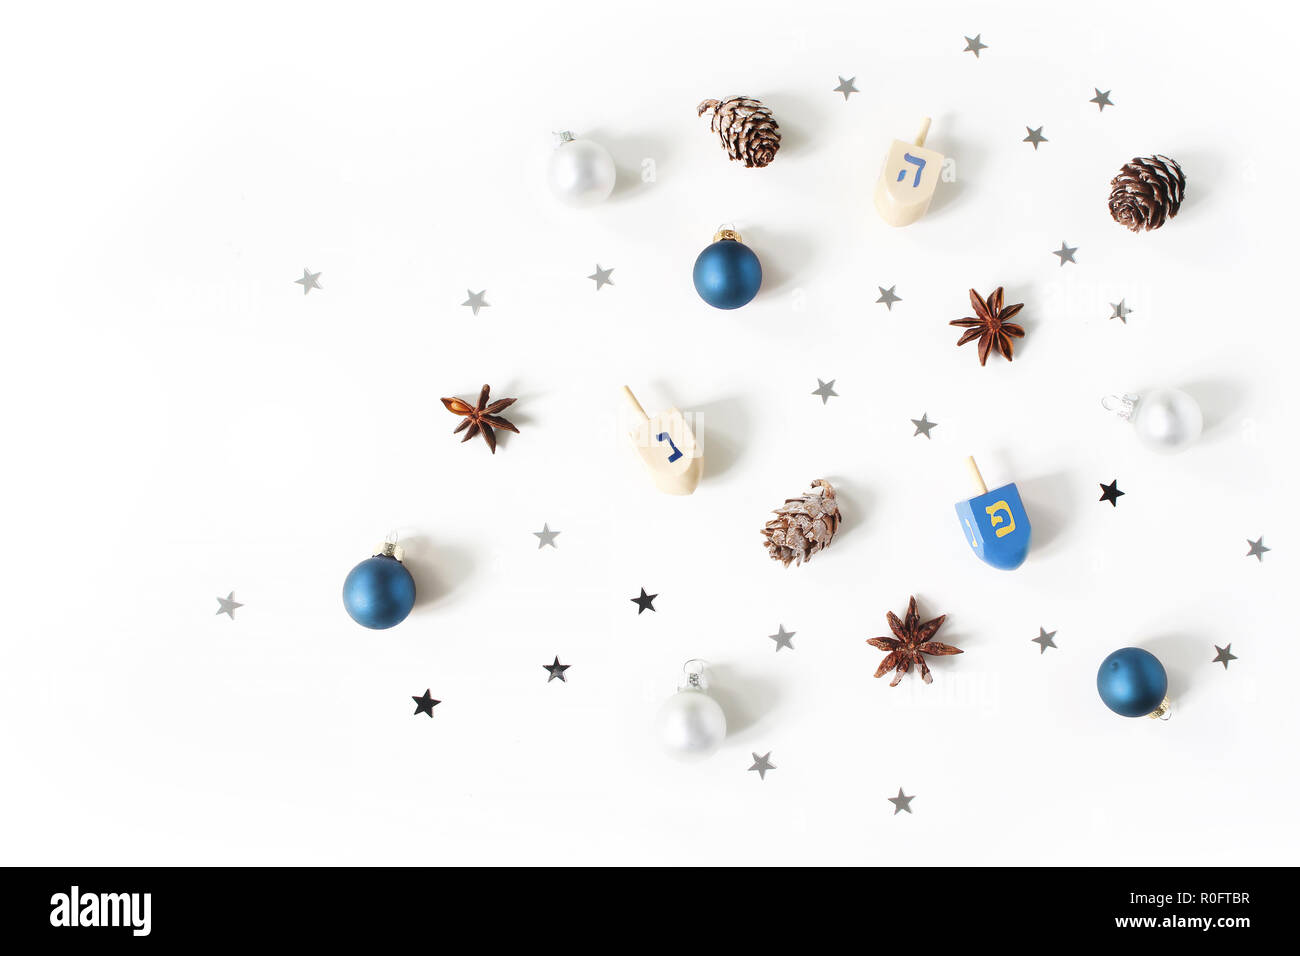 Hanukkah styled stock composition. Decorative pattern. Wooden dreidel toys, larch cones, anise and silver confetti stars decoration on white background. Flat lay, top view. Jewish design. - Stock Image